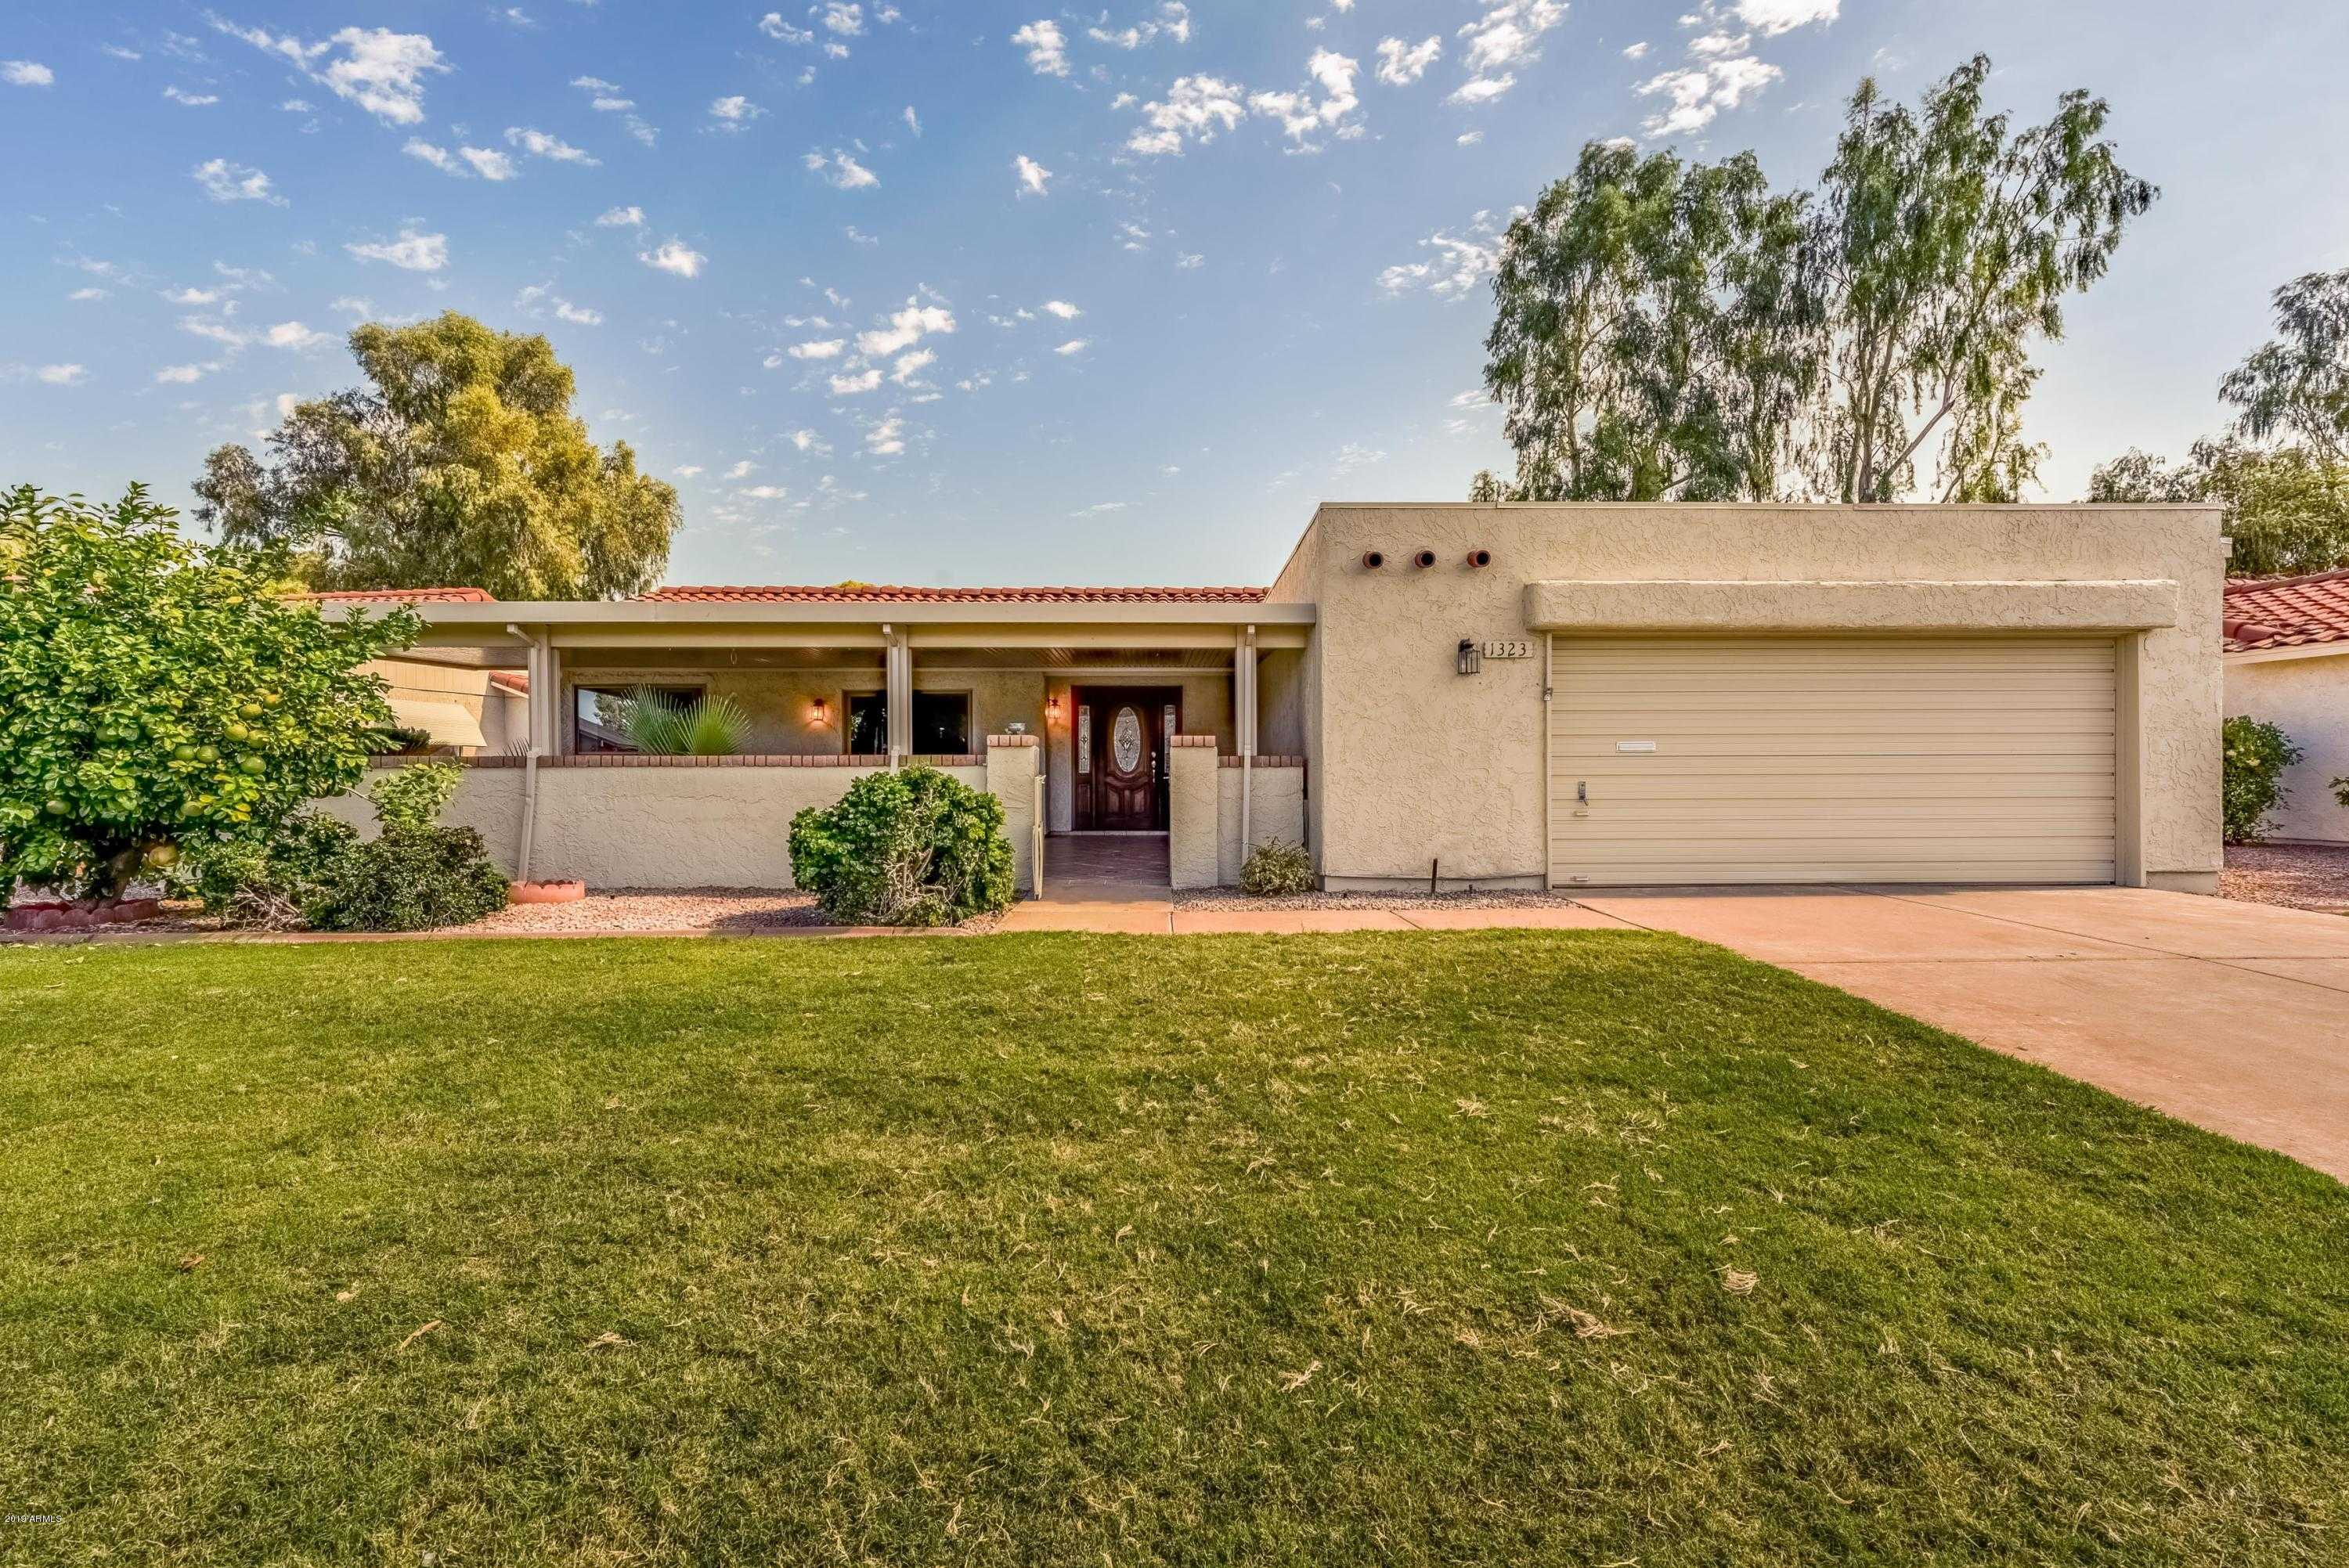 $299,900 - 3Br/2Ba - Home for Sale in Leisure World Plat 12 Lot 1100-1404 & Tr A-t, Mesa